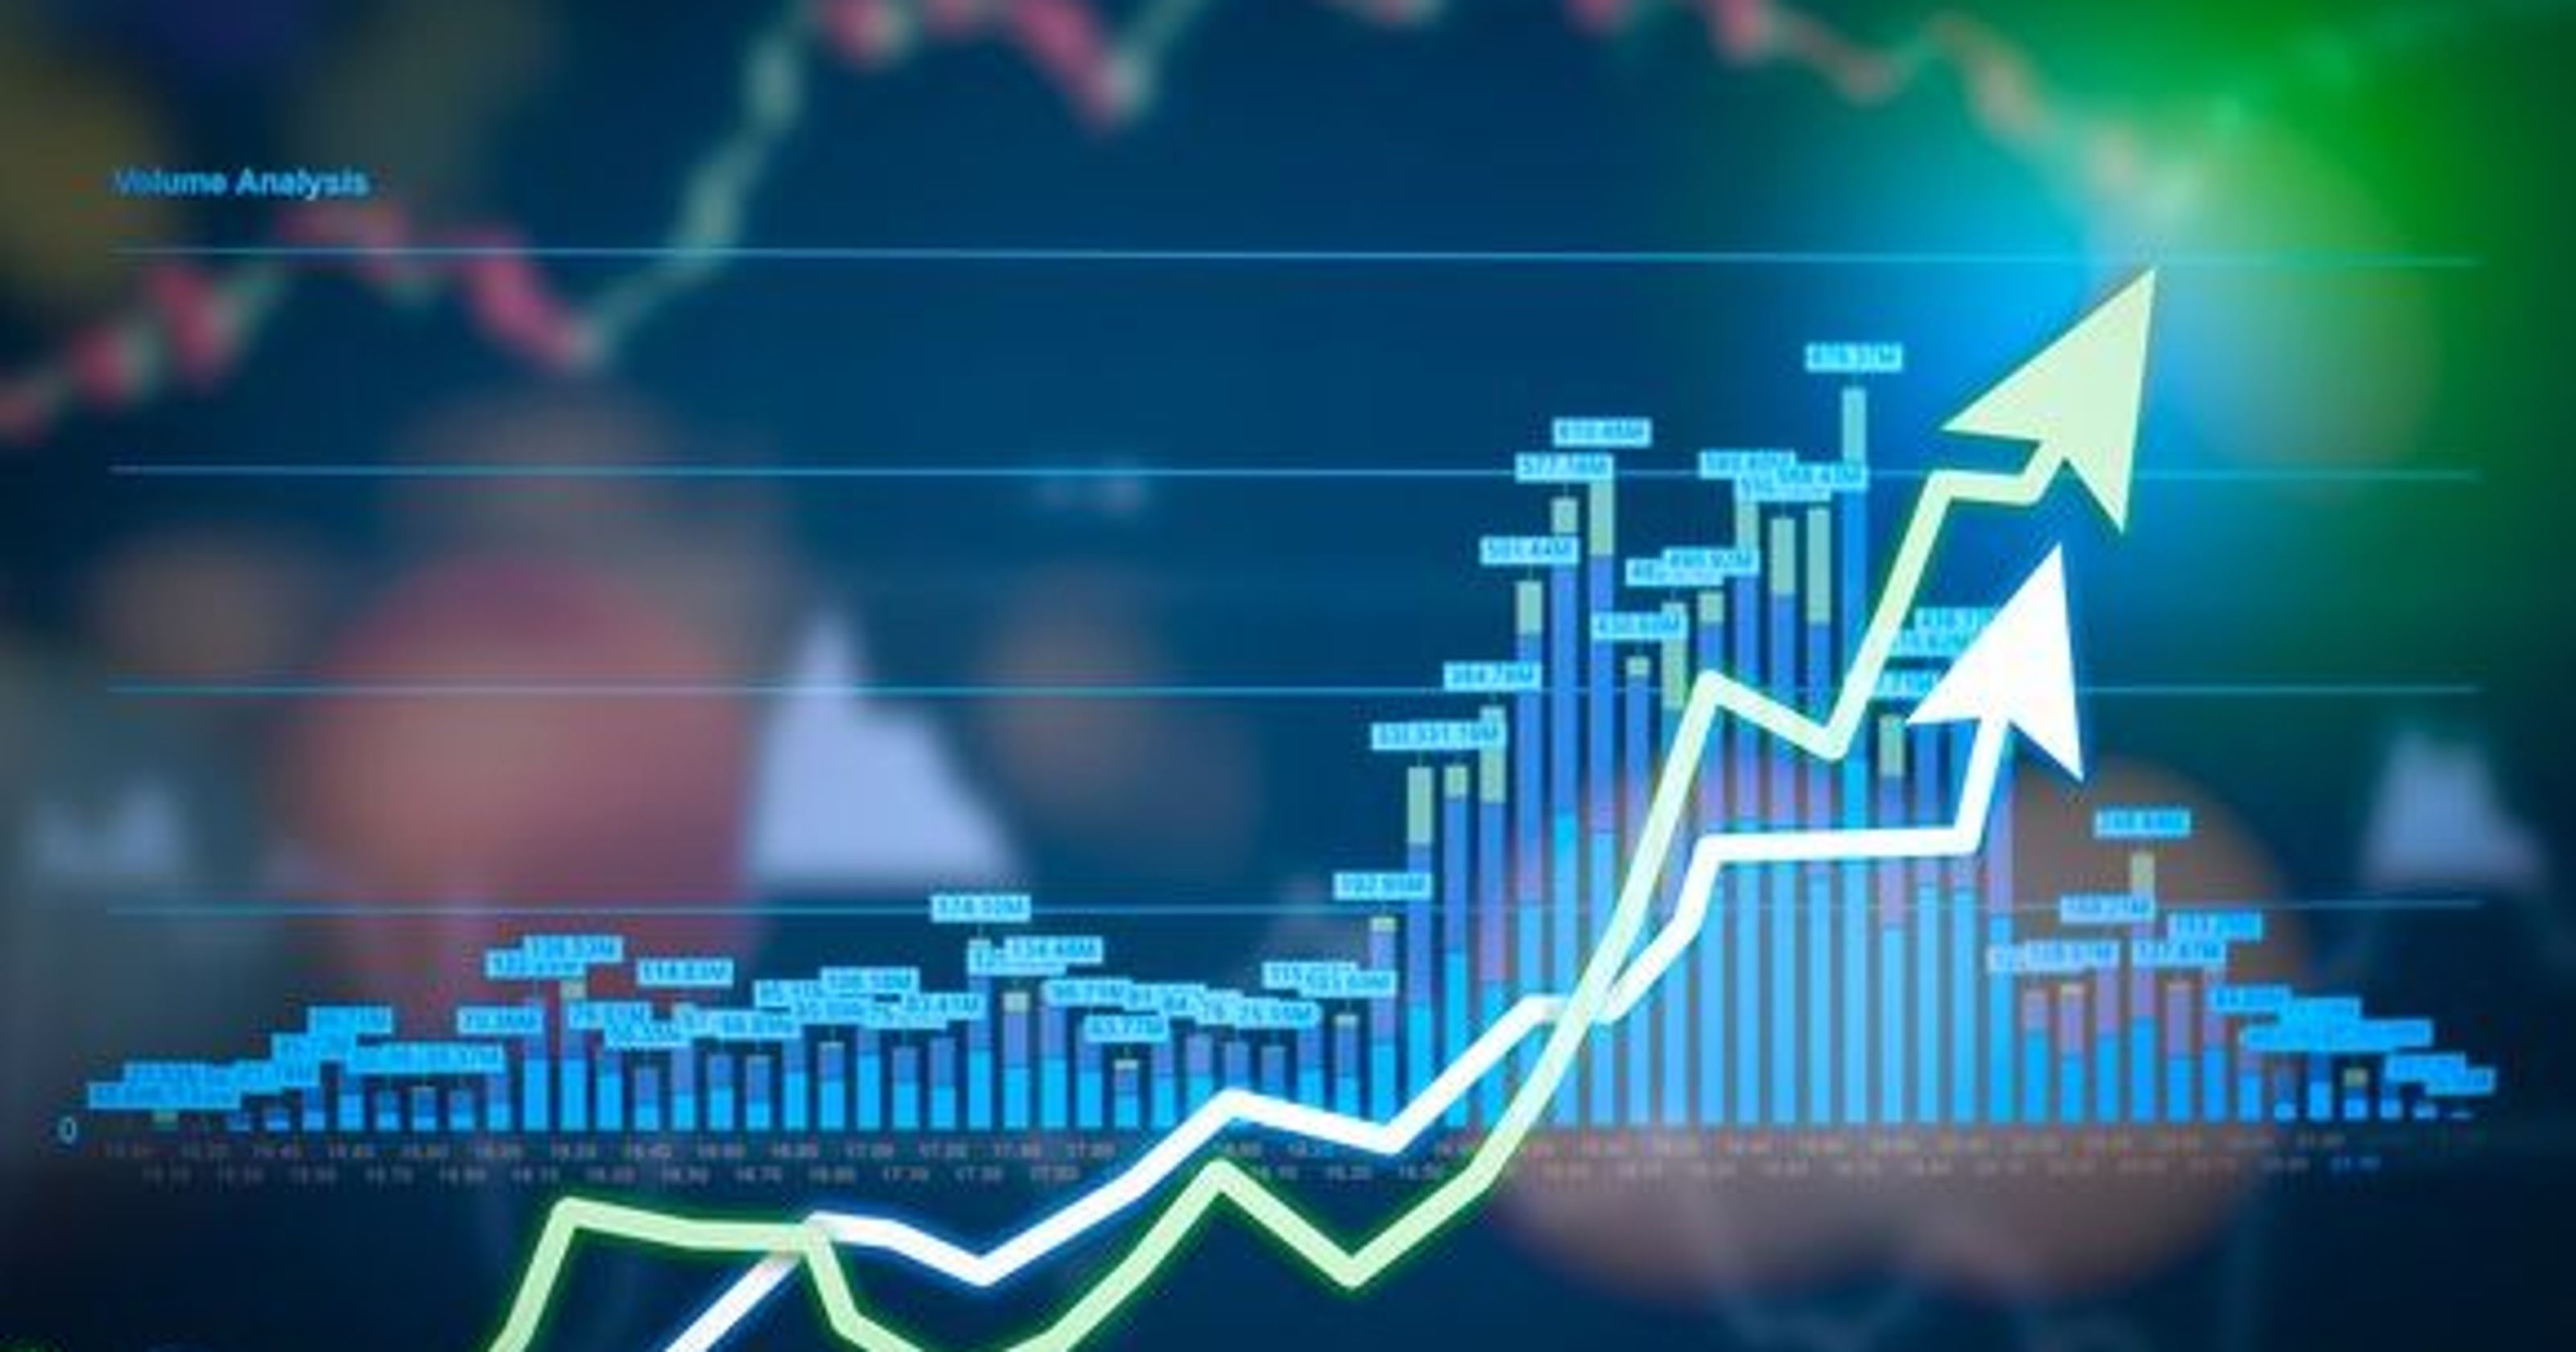 Five-year high profit growth estimated at stock - The Biz Update